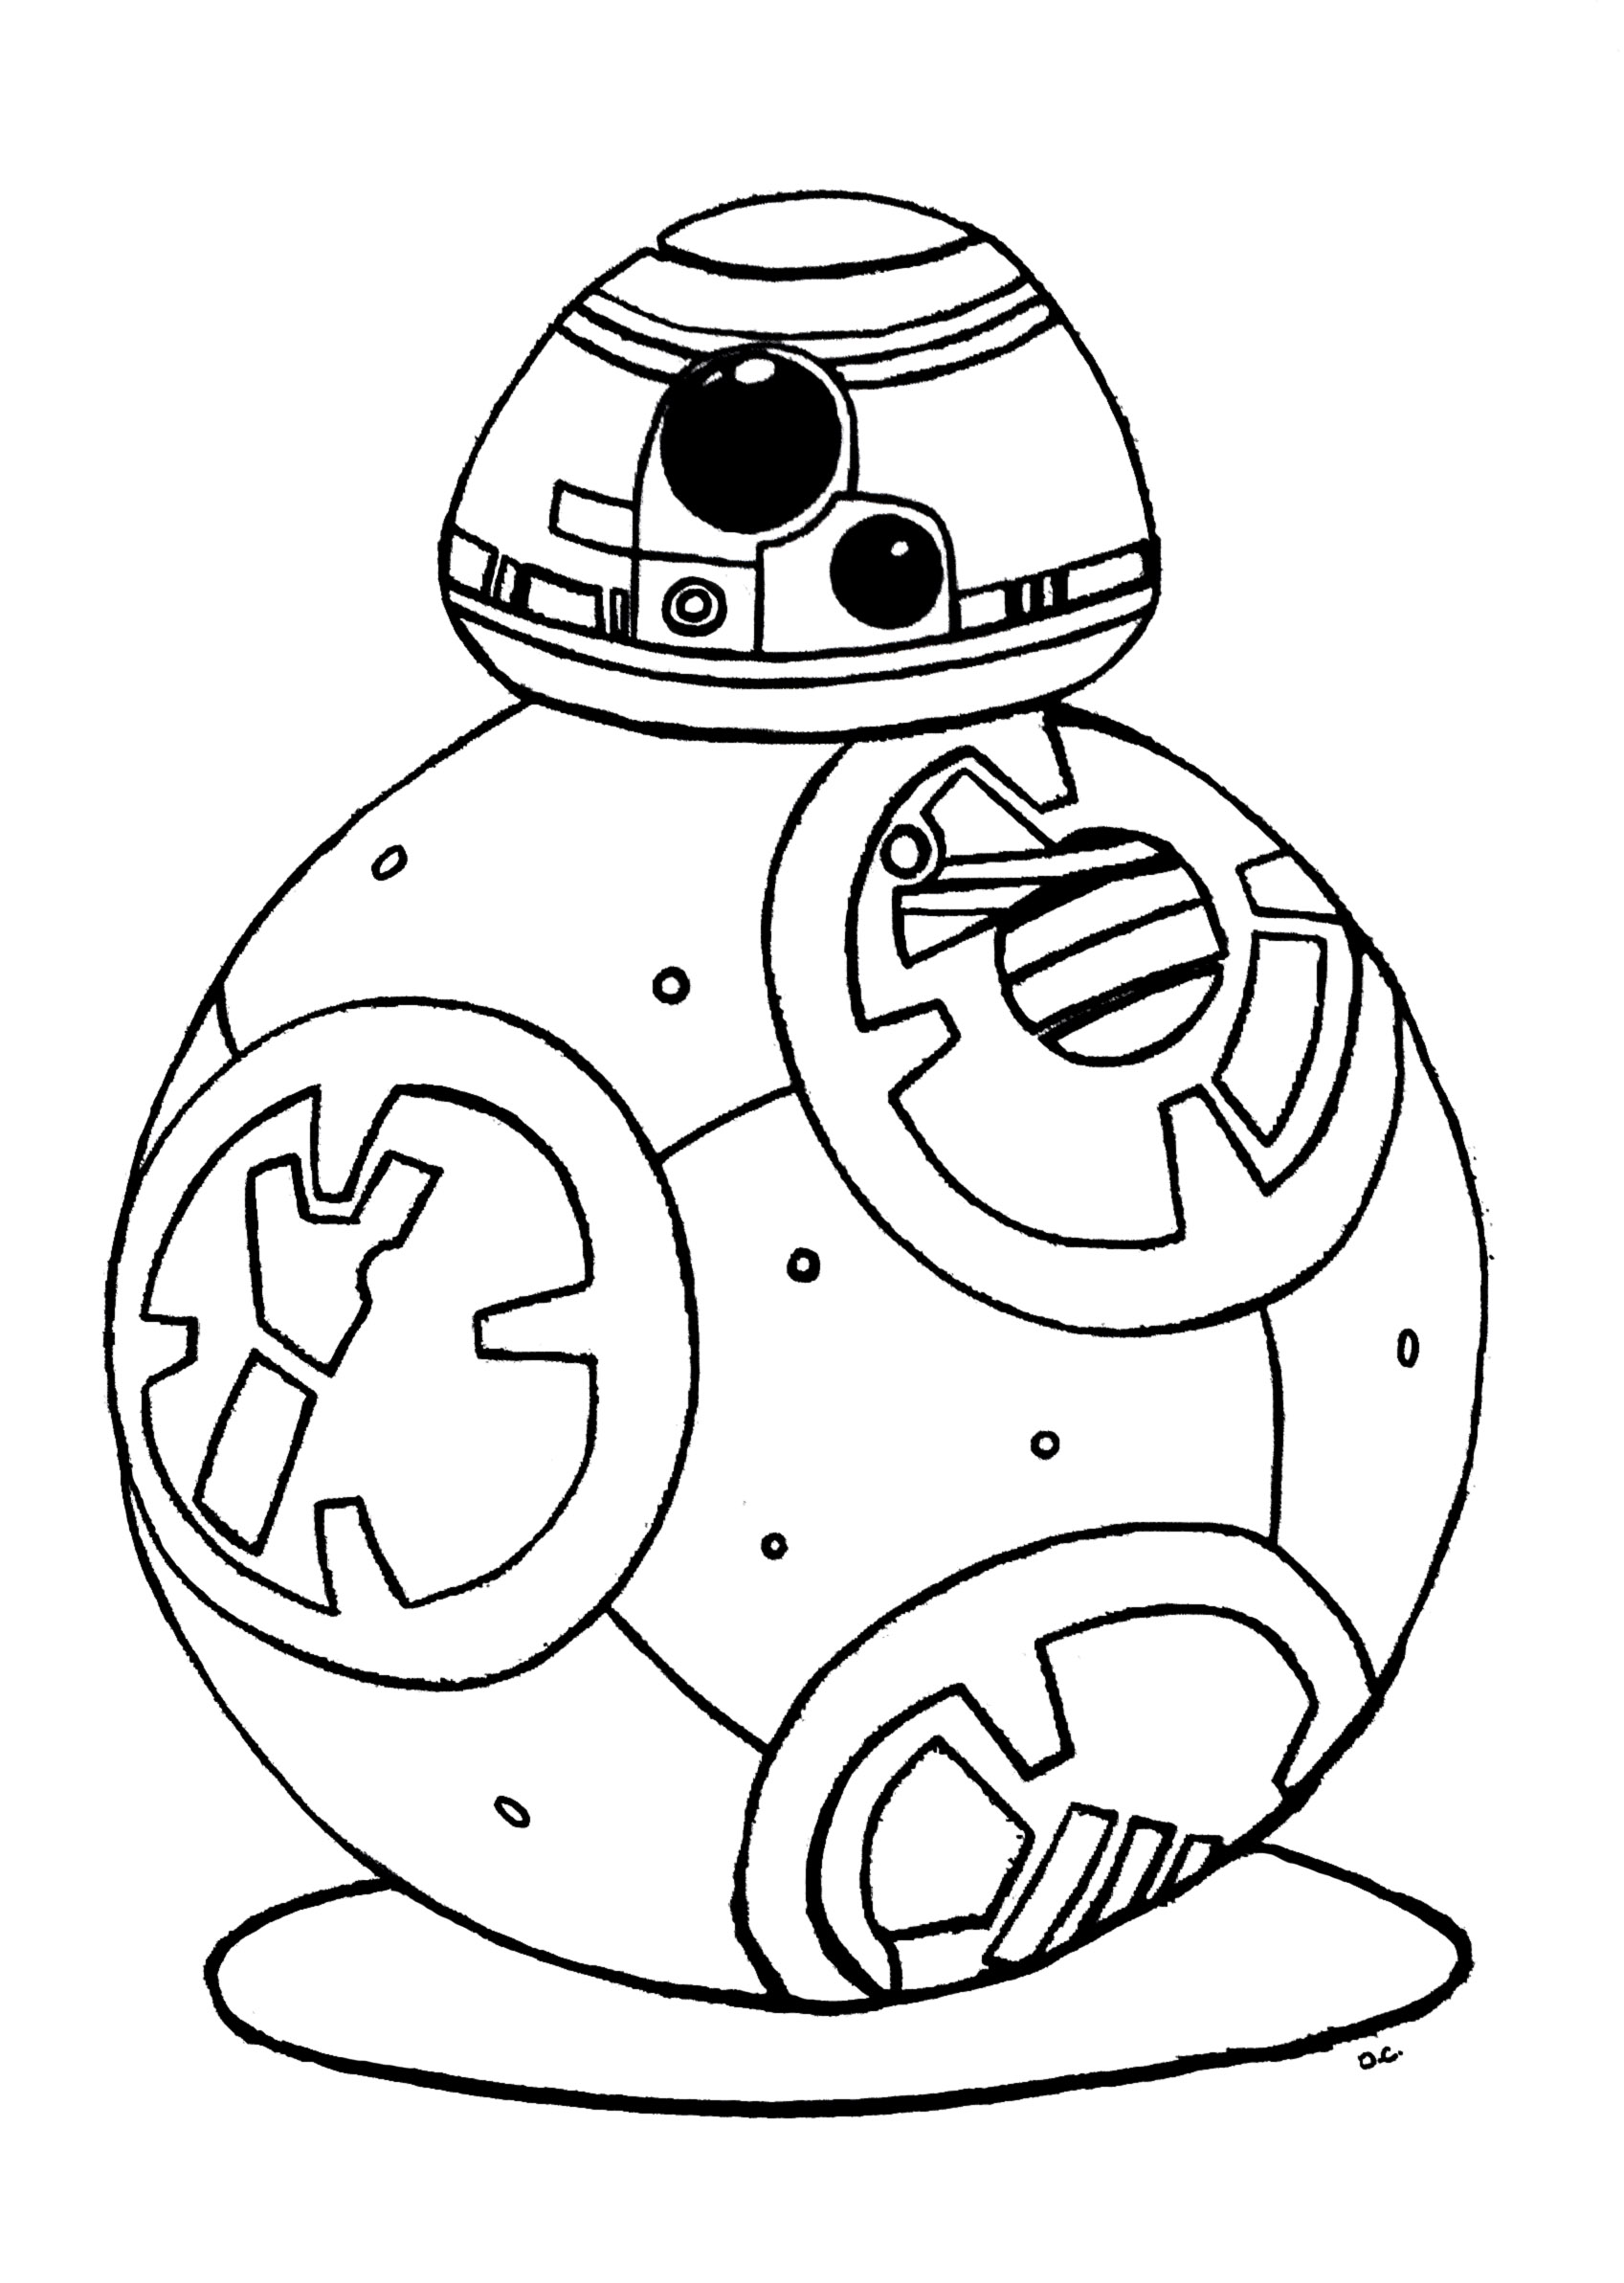 star wars pictures to print star wars stormtrooper coloring pages printable coloring to print star pictures wars